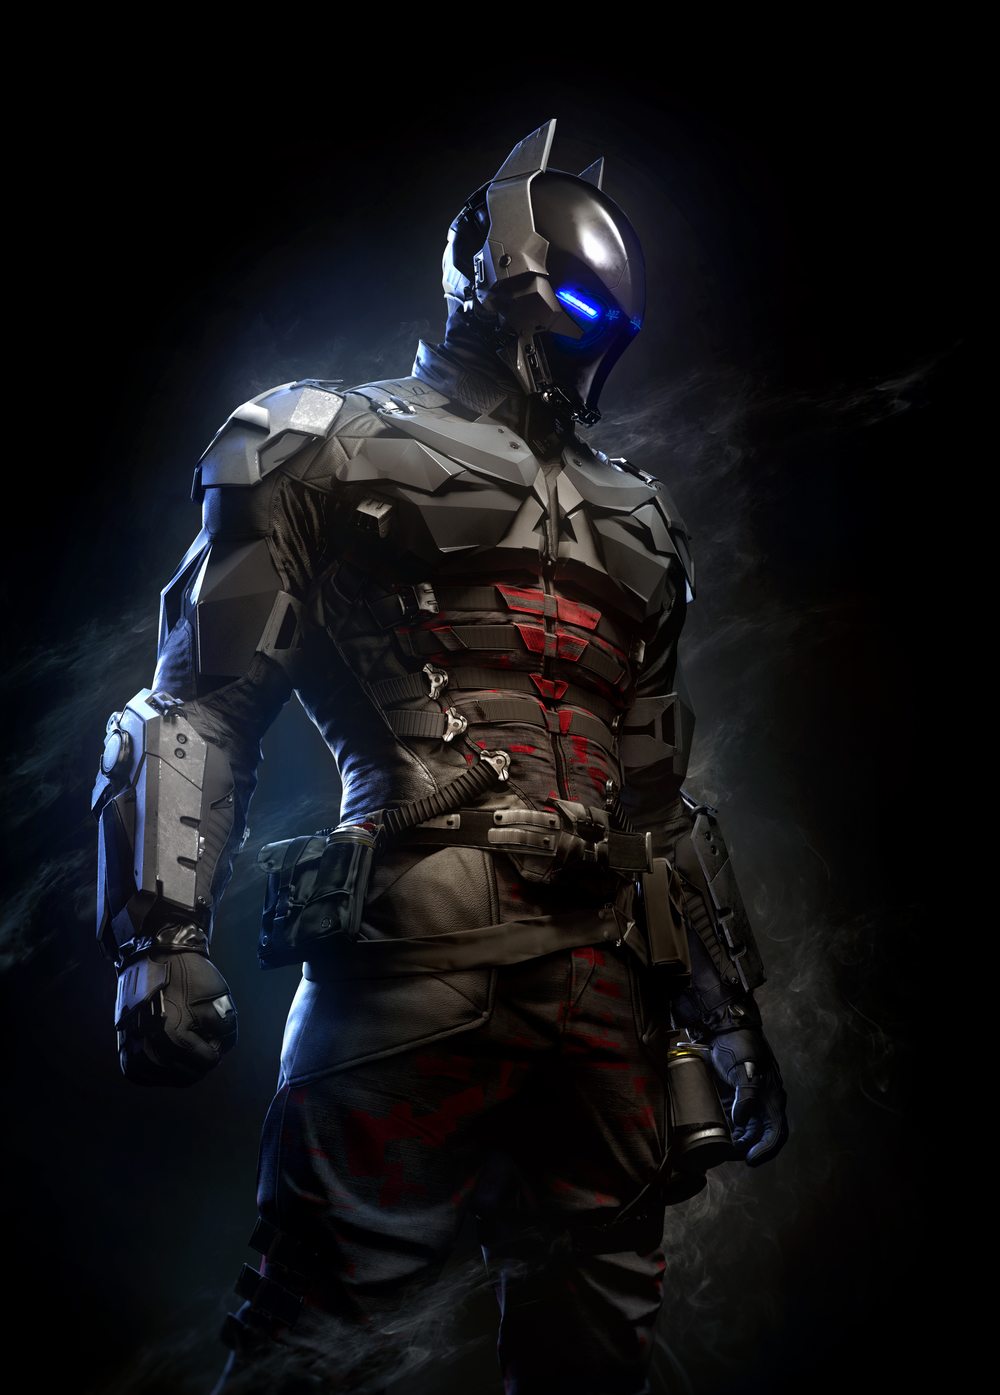 ArkhamKnight_render-358x500.jpg